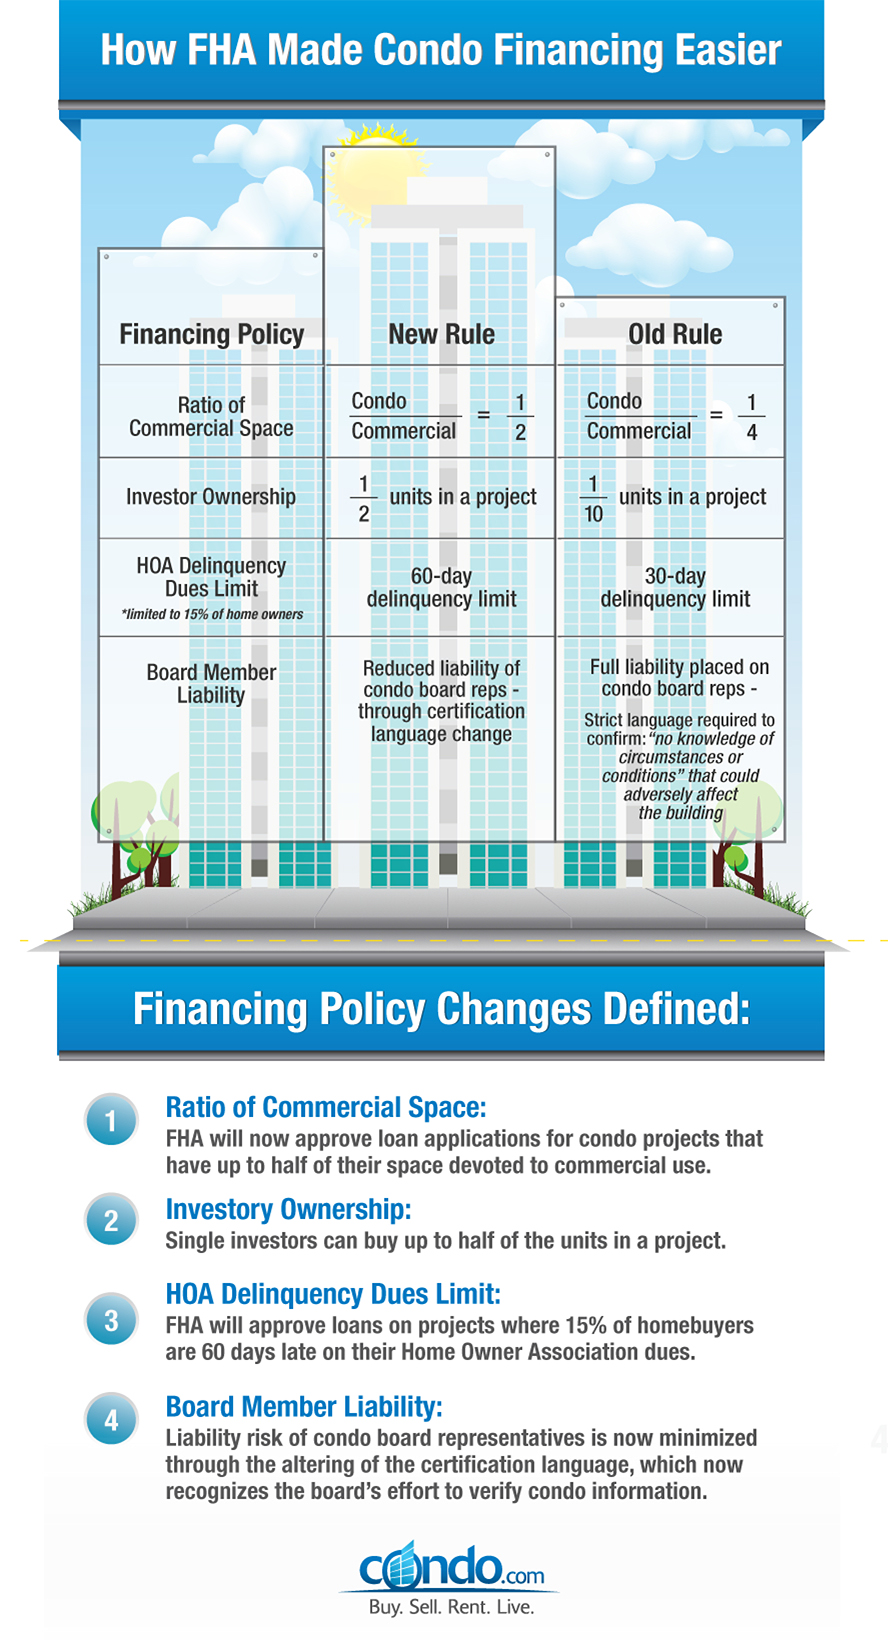 New Fha Guidelines Poised To Make Positive Difference In Financing